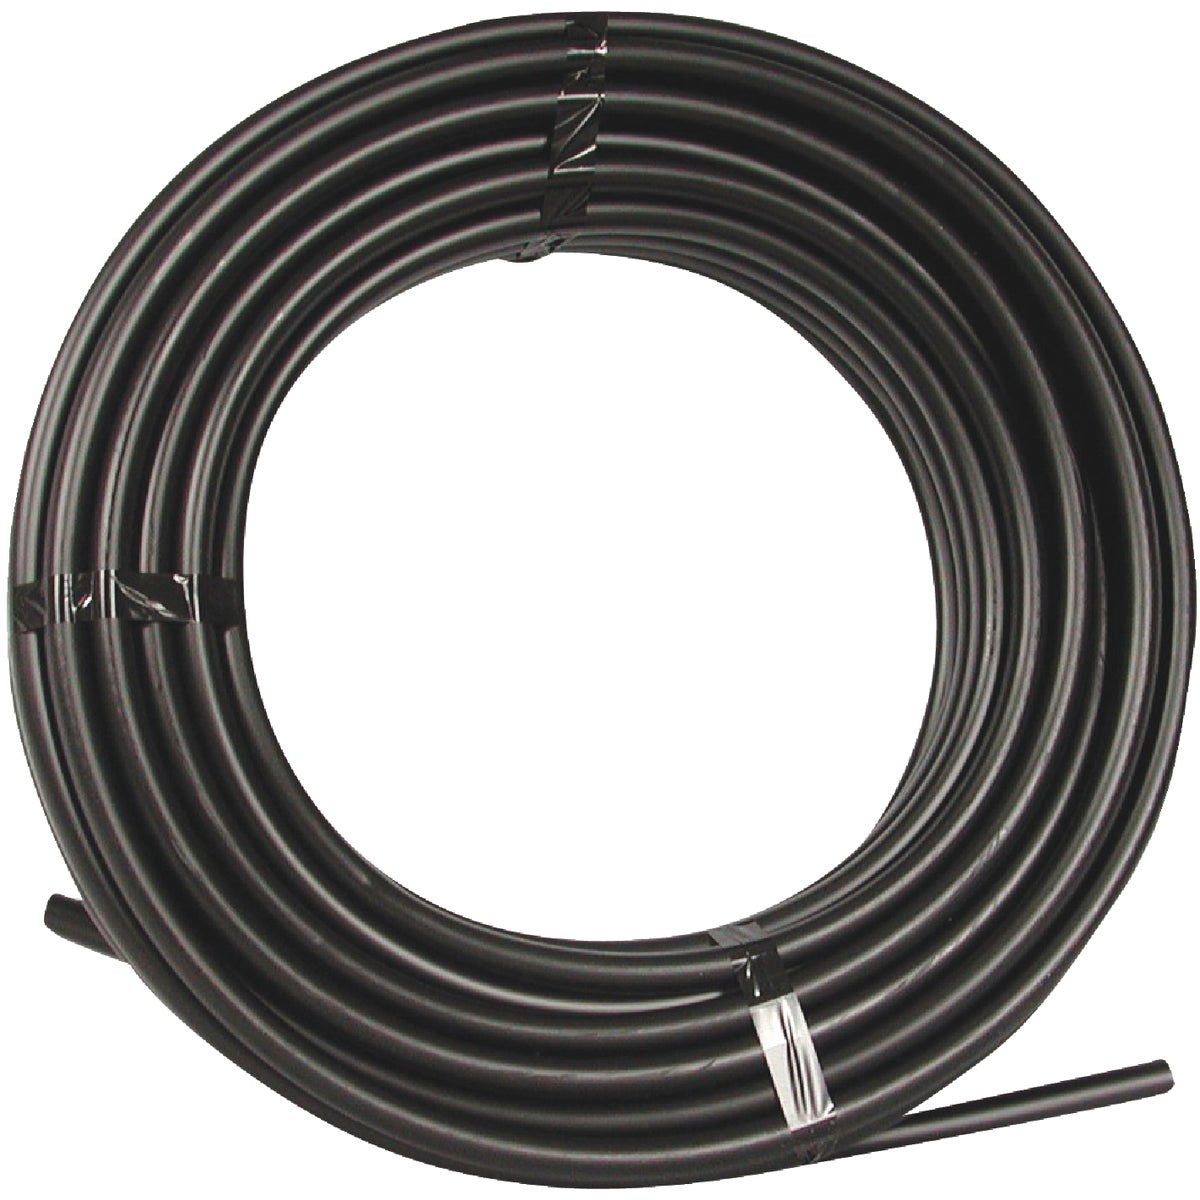 5/8X500 POLY DRIP TUBING - 061050 by Raindrip Inc